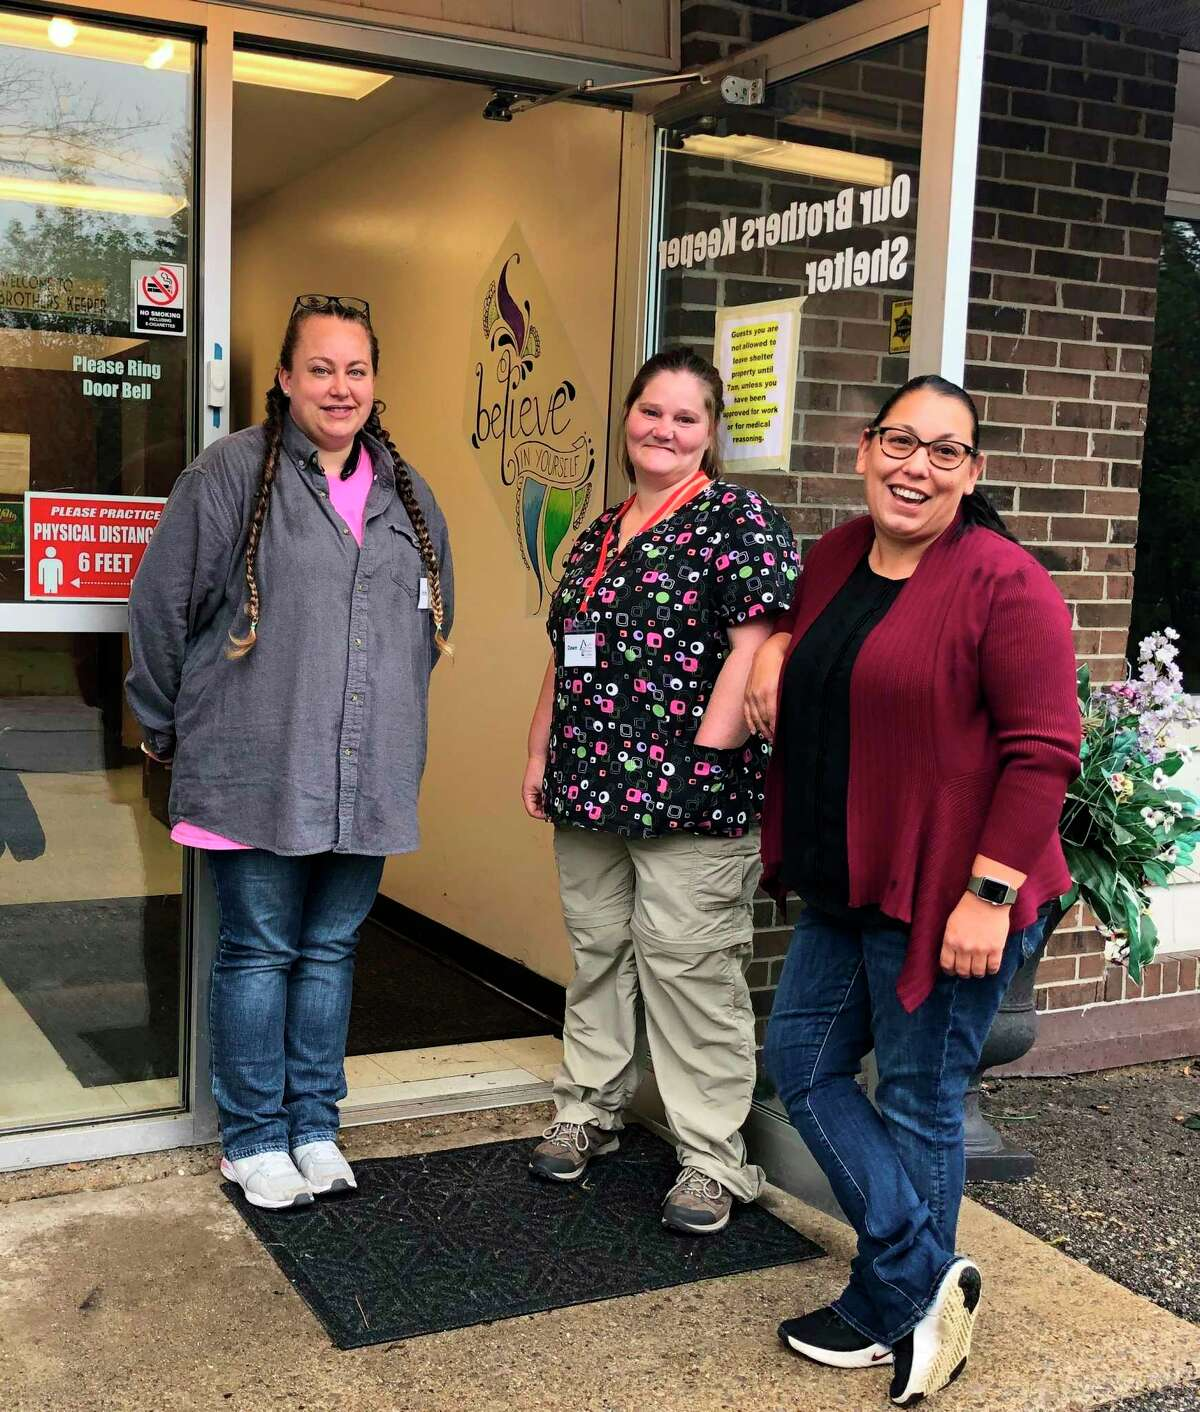 Pictured, from the left, is Shelter Coordinators Emily Dunkel and Dawn Frederick and Executive Director Nicole Alexander. (Courtesy photo)